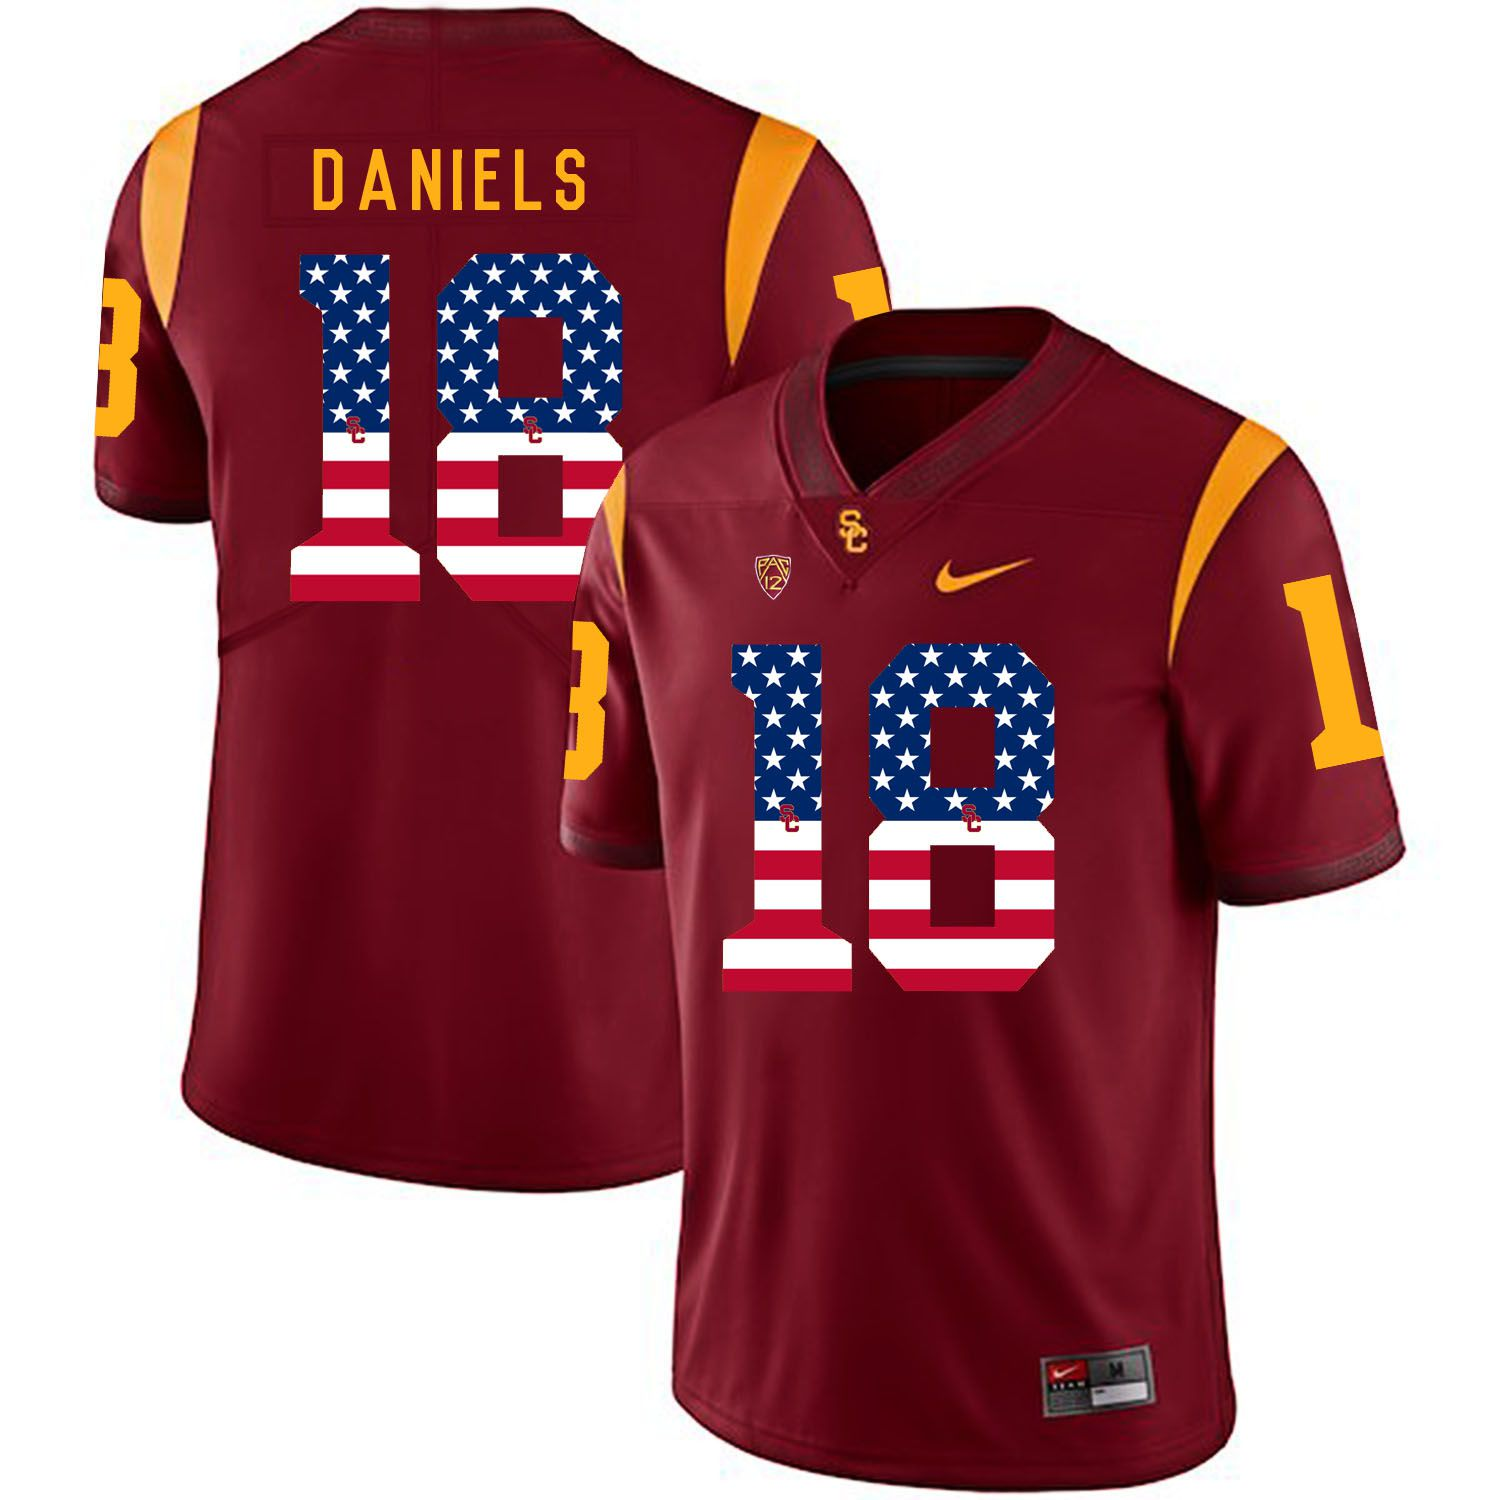 Men USC Trojans 18 Daniels Red Flag Customized NCAA Jerseys